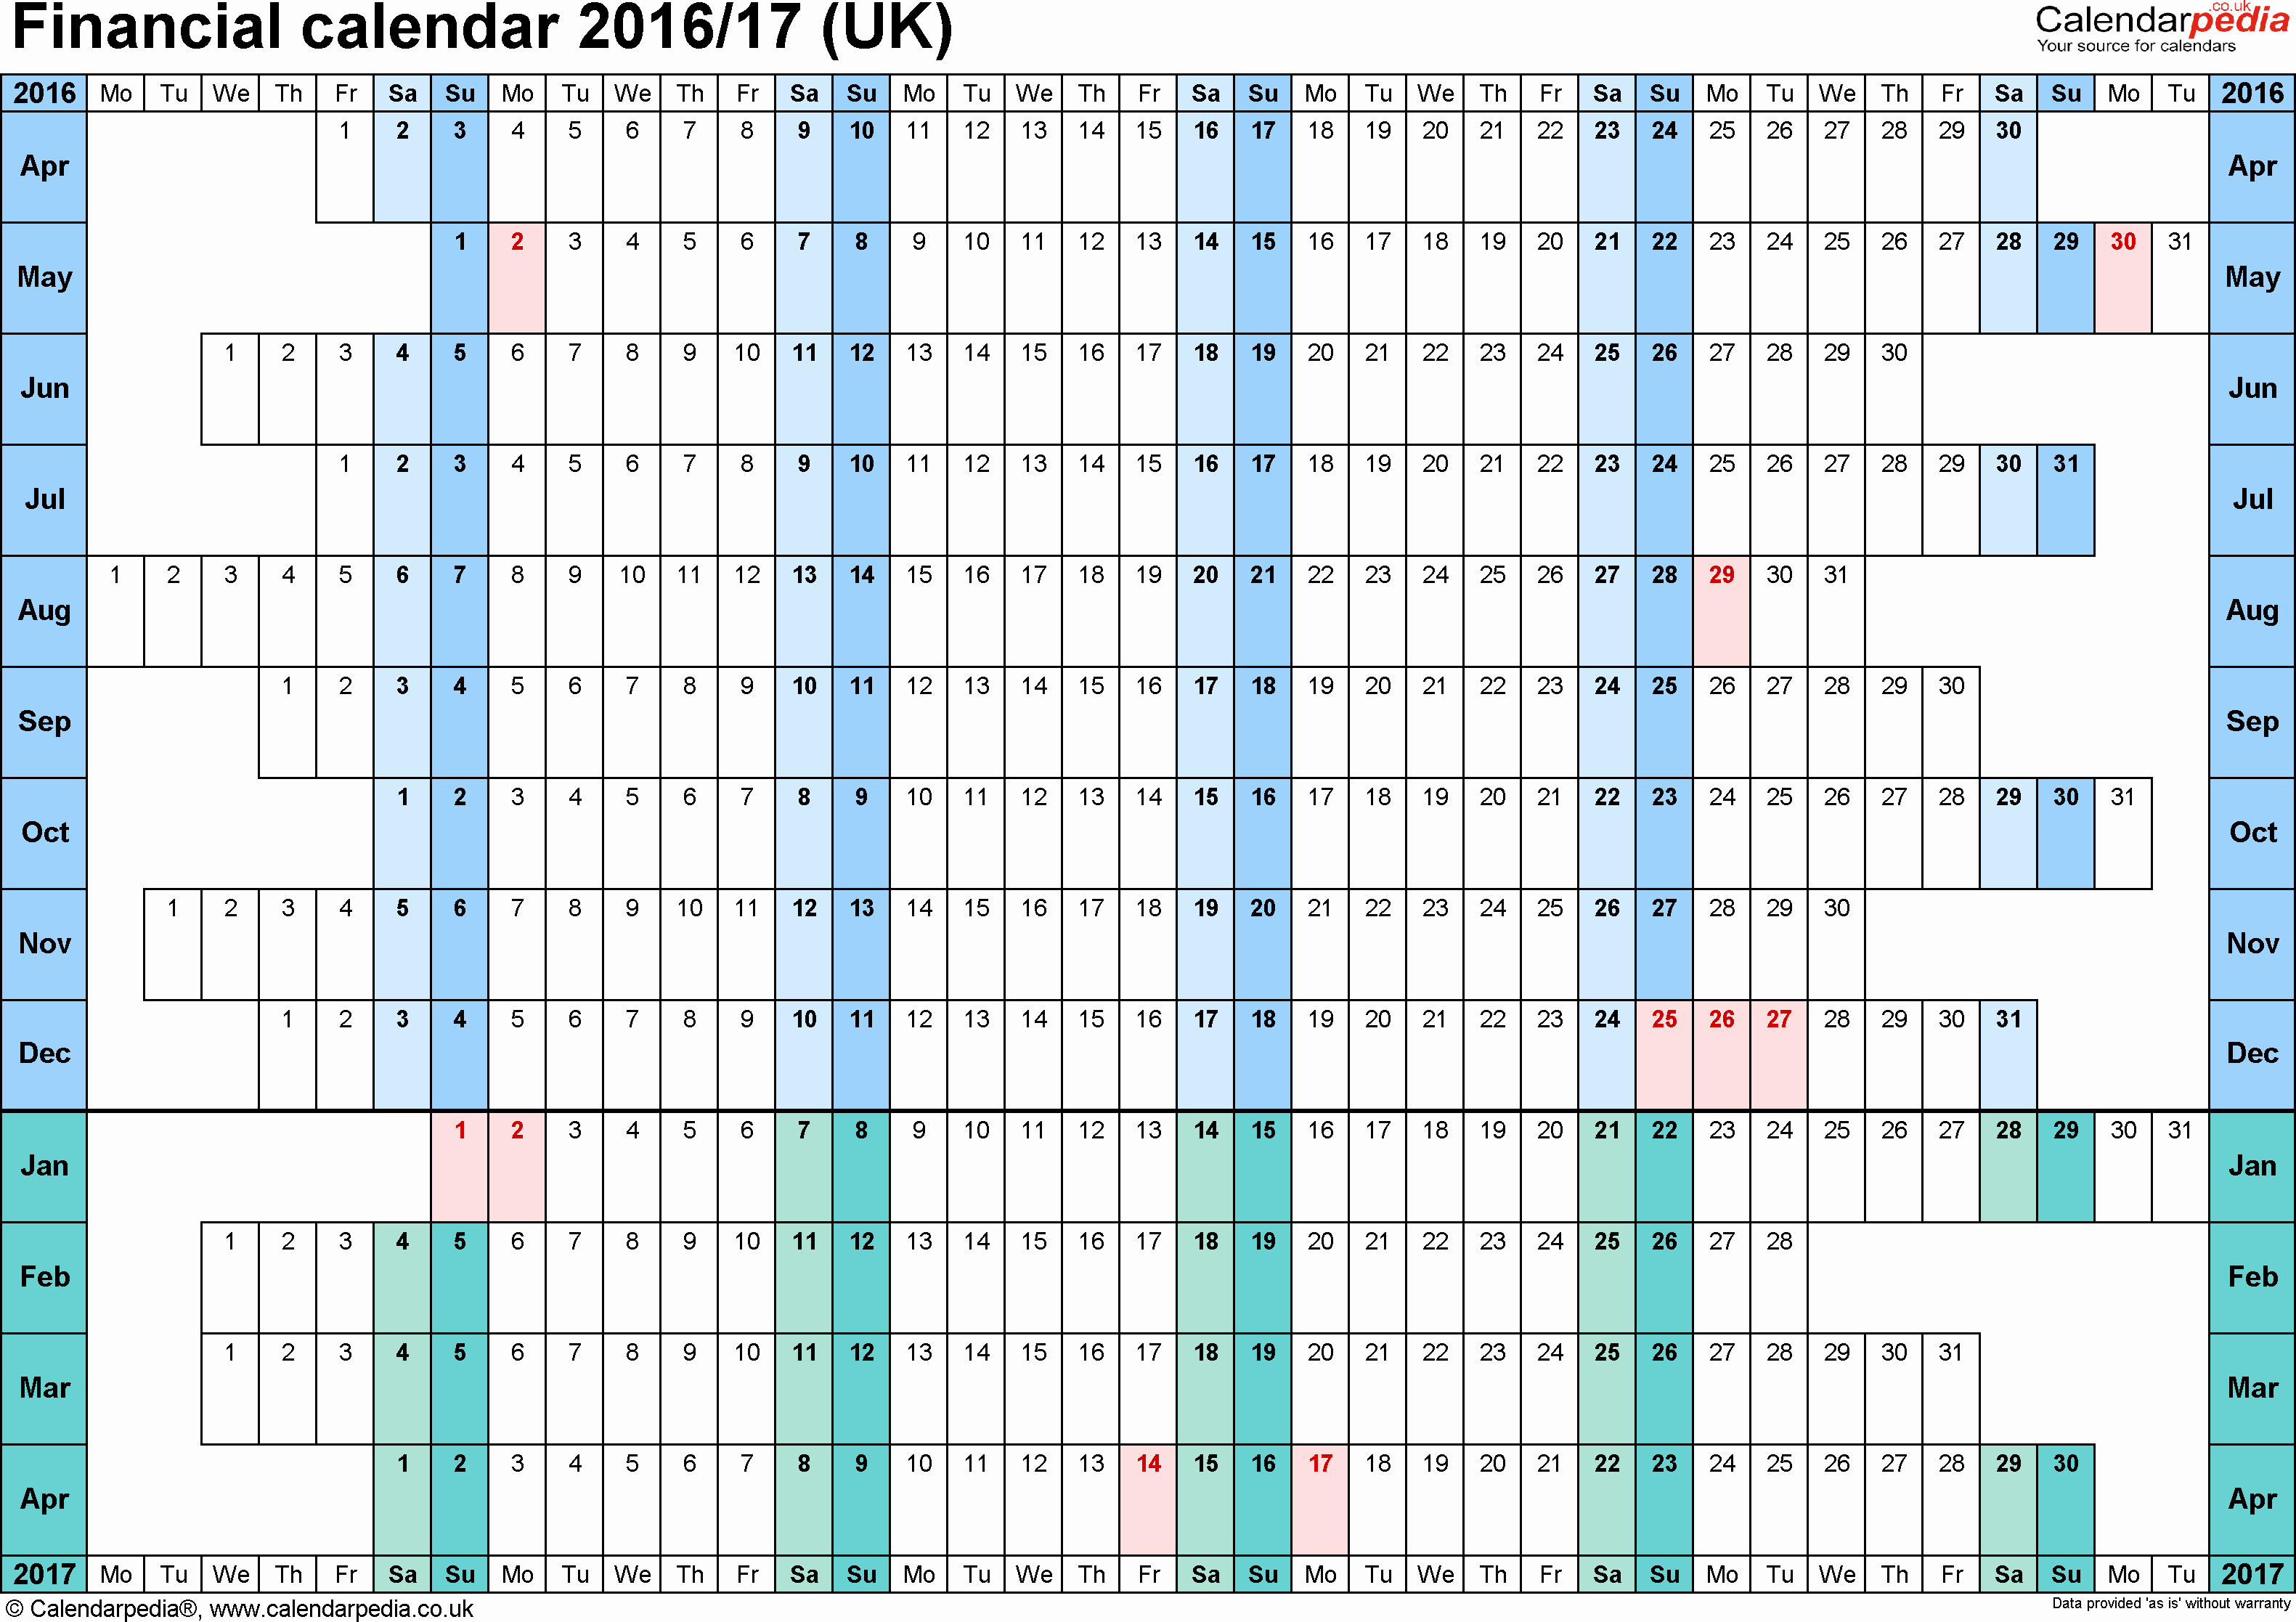 Blank Calendar 2016-17 New Financial Calendars 2016 17 Uk In Pdf format